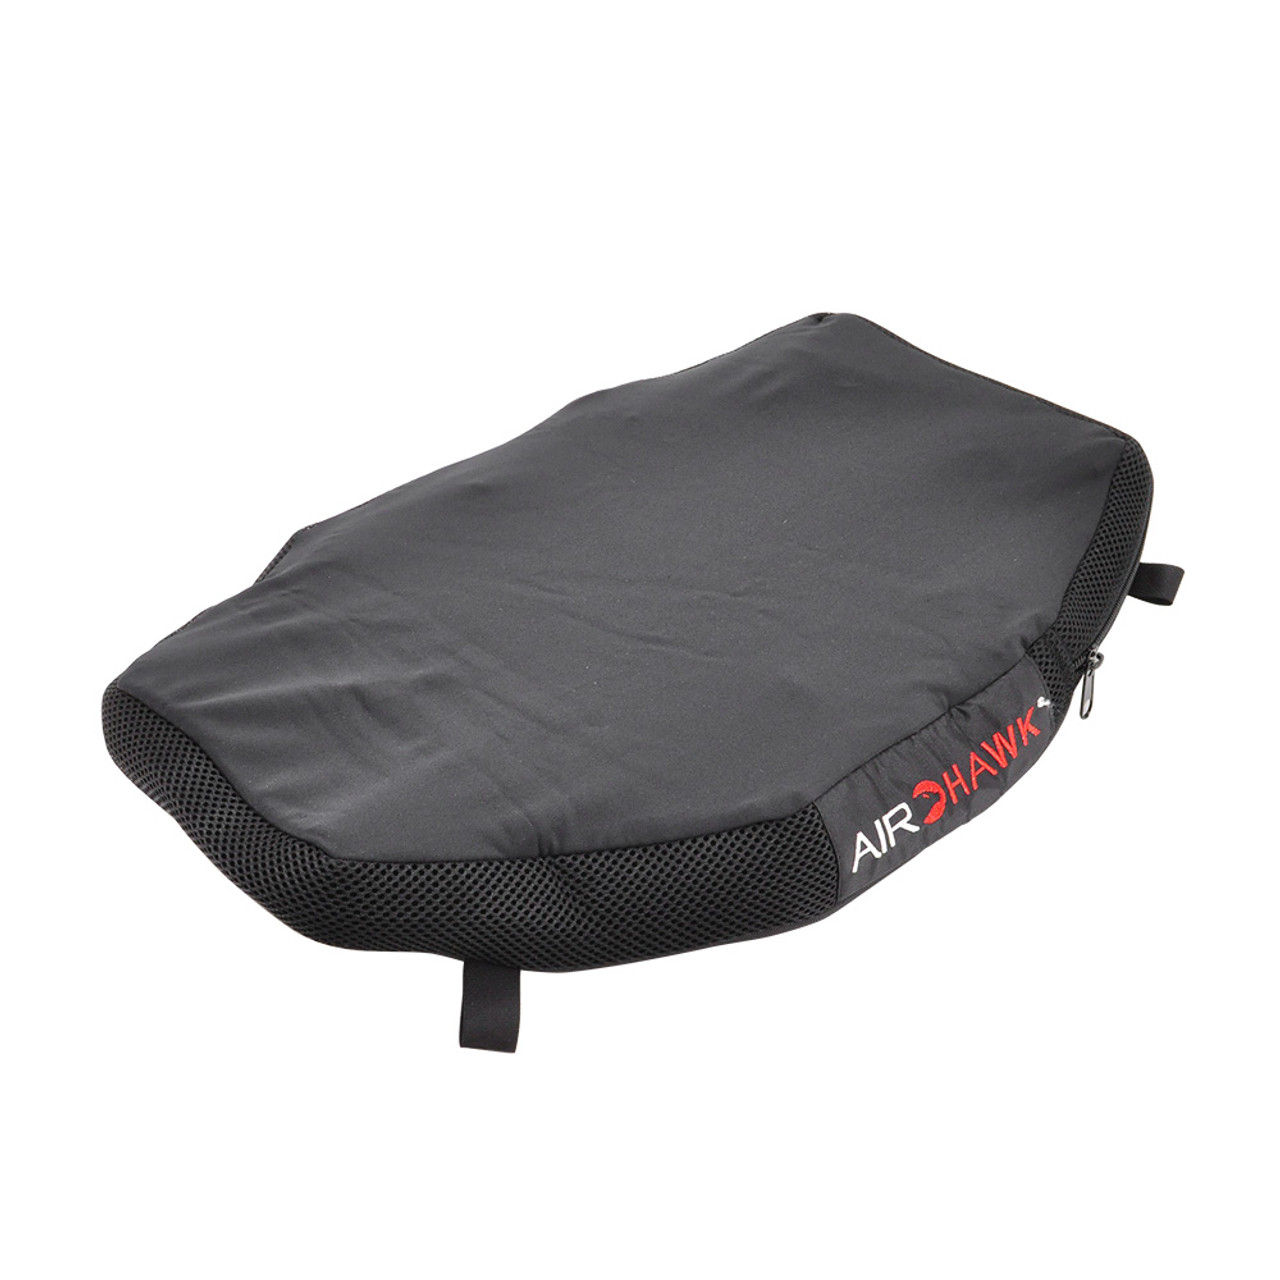 Airhawk 2 Comfort Seating System Seat Cushion For Small Cruiser Inflatable Seat Cushion With Black Cover Made In The Usa